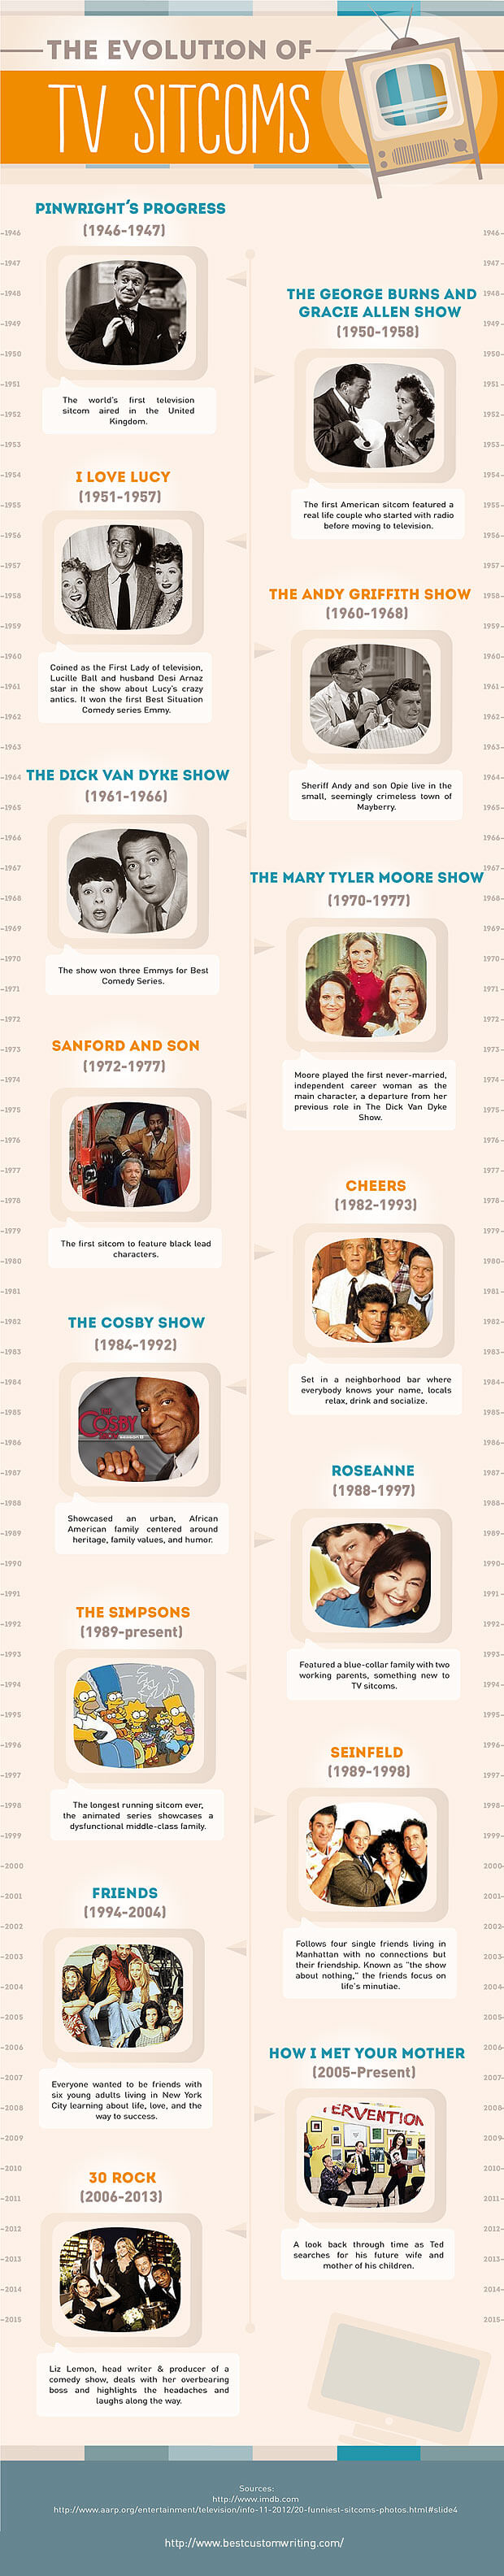 The evolution of TV sitcoms